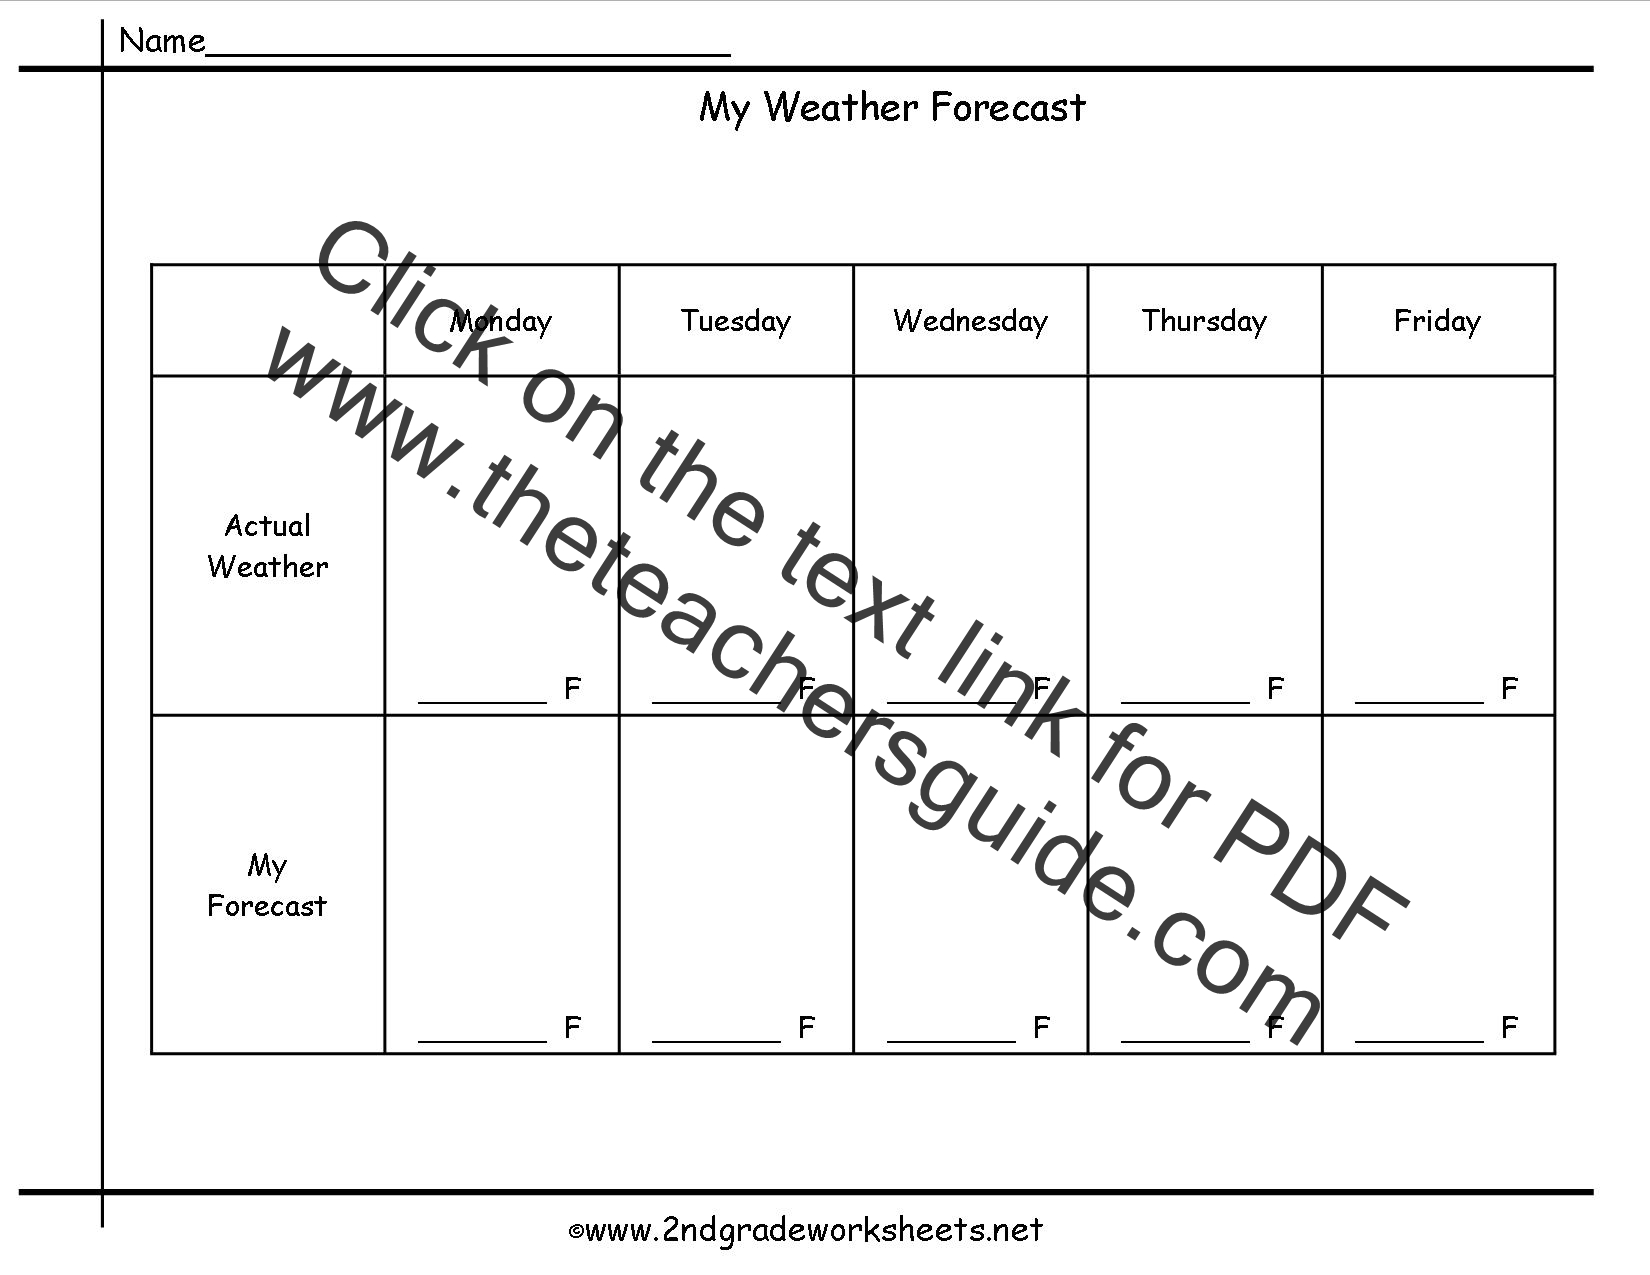 Printable Daily Weather Forecast